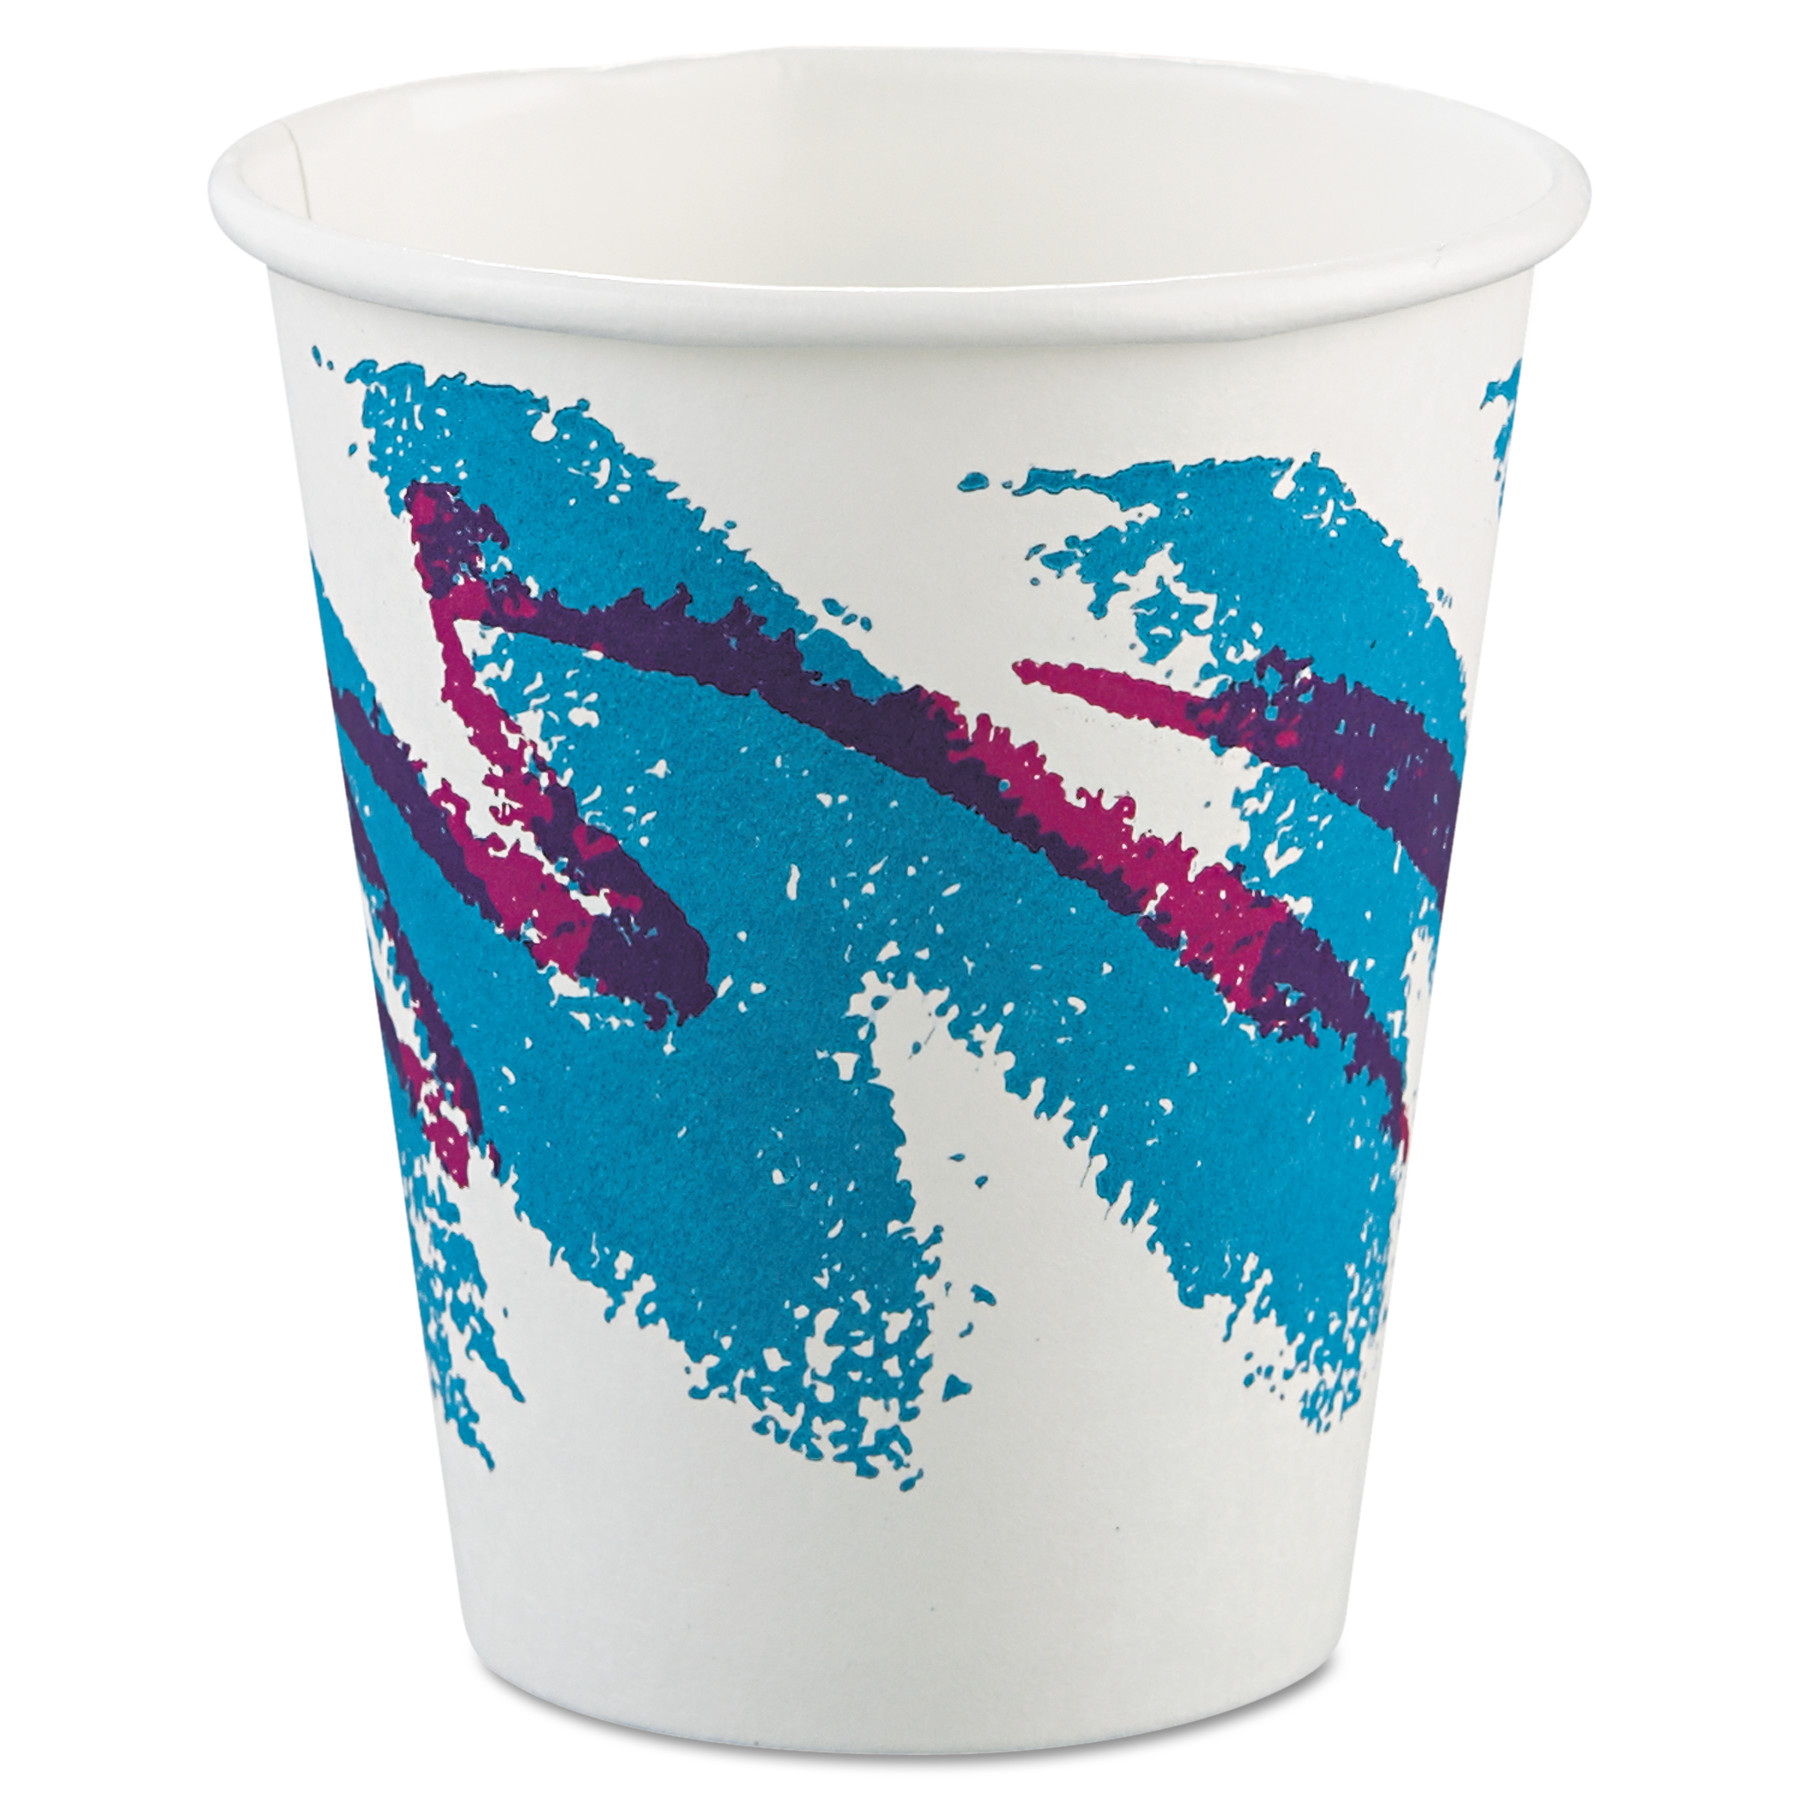 Solo Cup Company Jazz Paper Polycoated 6 Oz Hot Cups, 50 count, (Pack of 20)